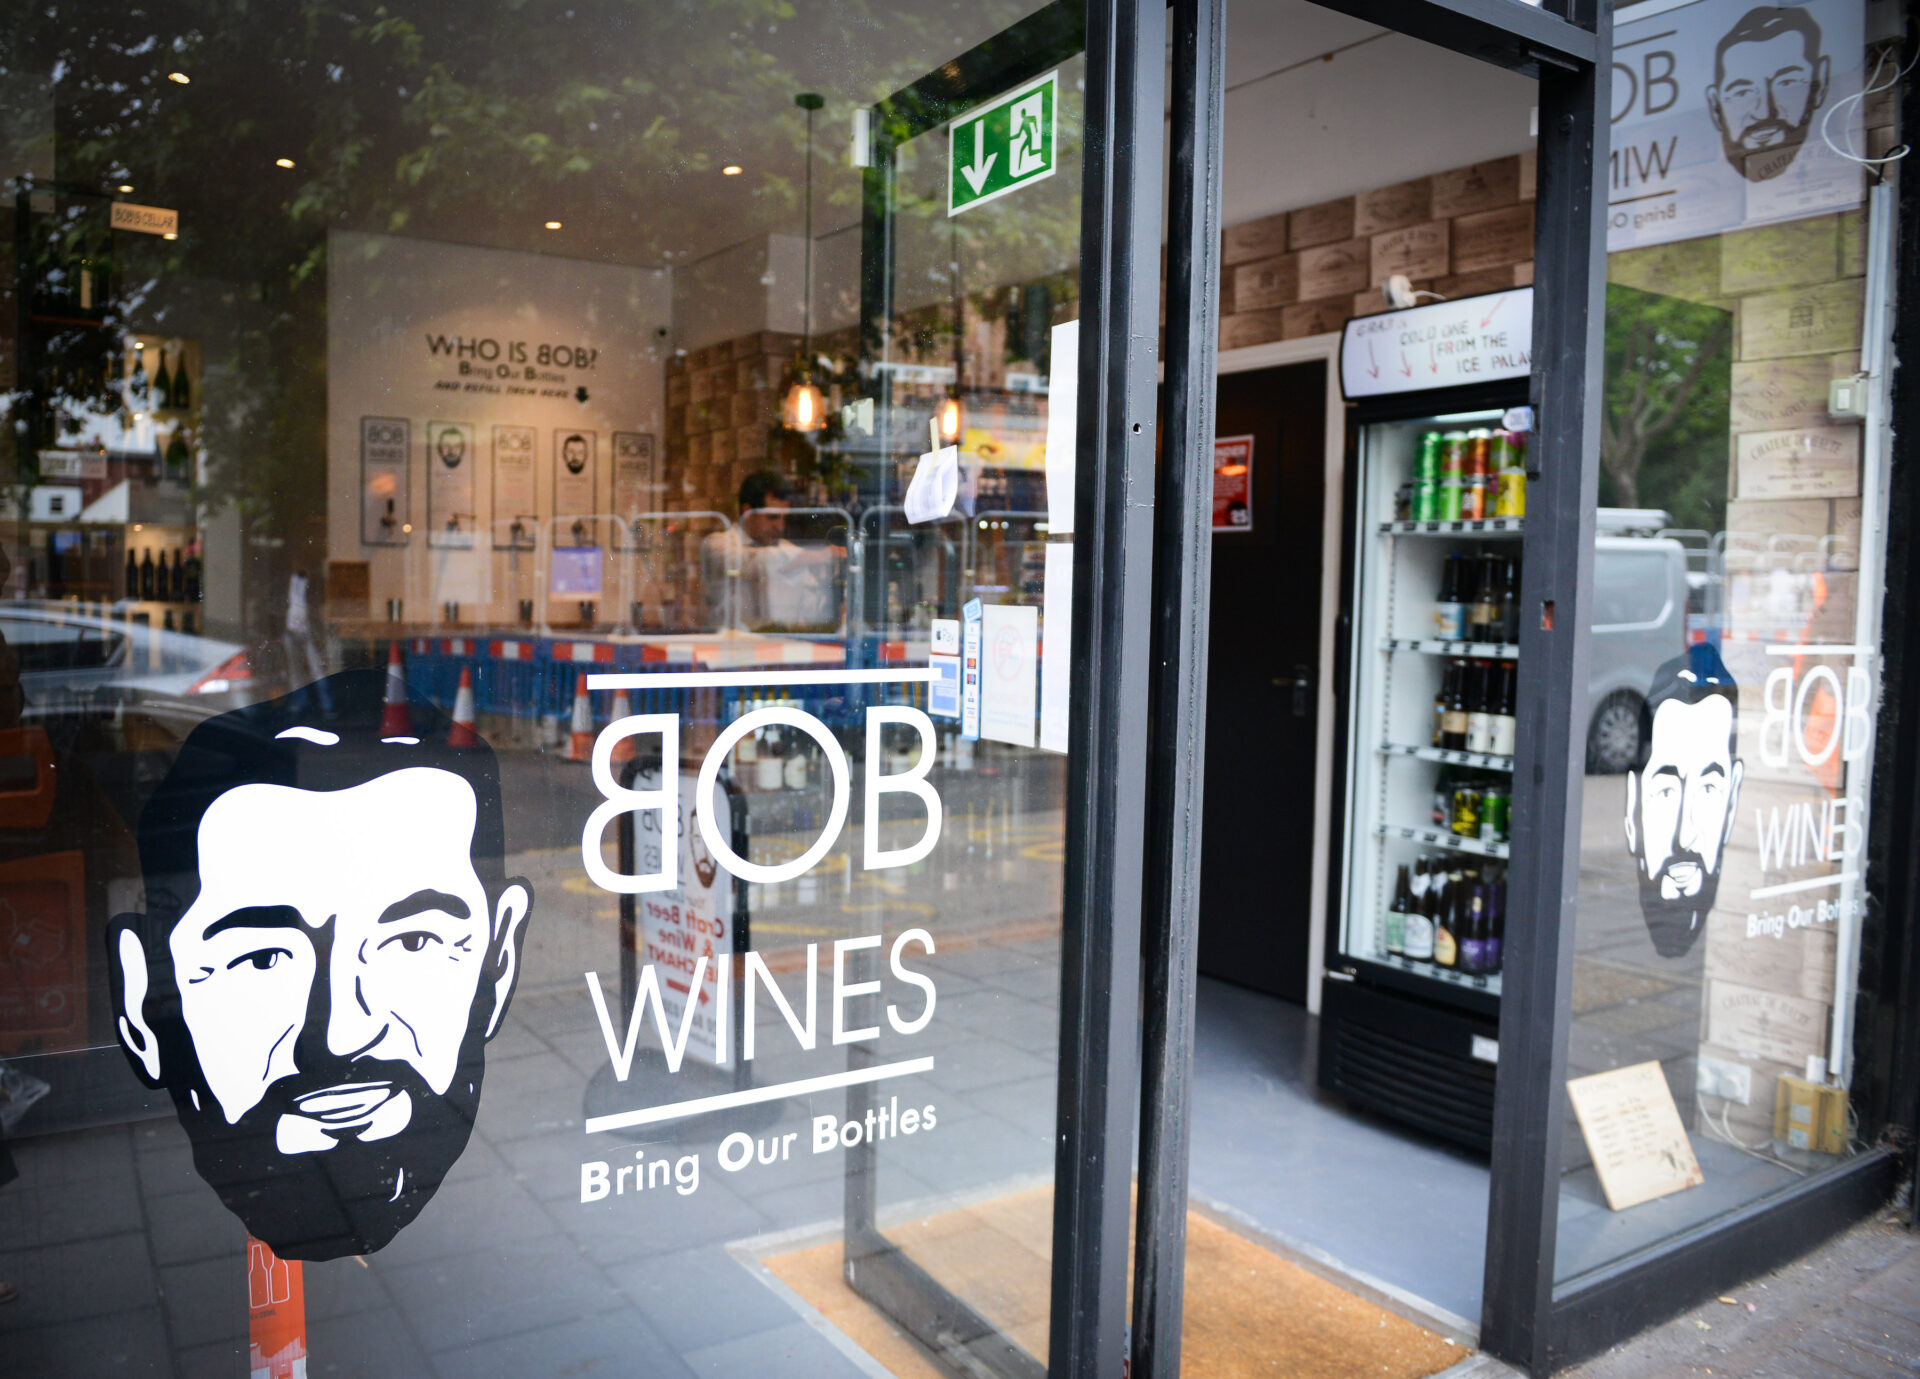 BOBs Wines Norwood Rd, SE27